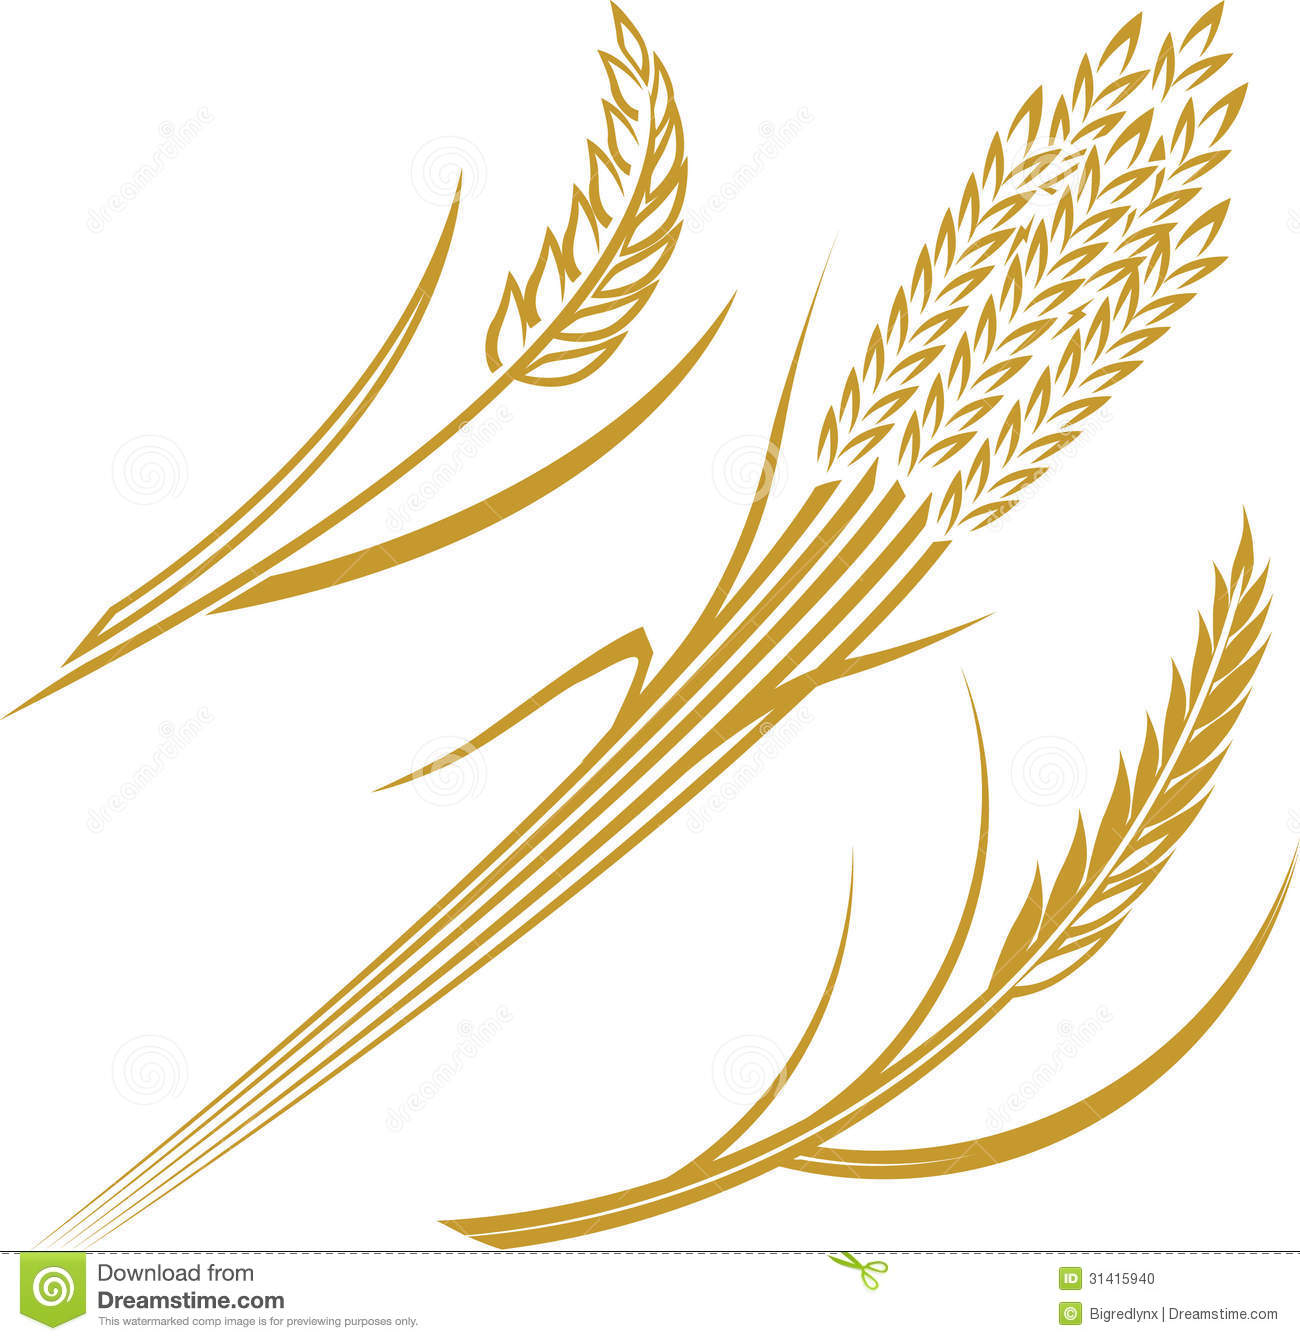 Clipart Illustration Wheat Grain